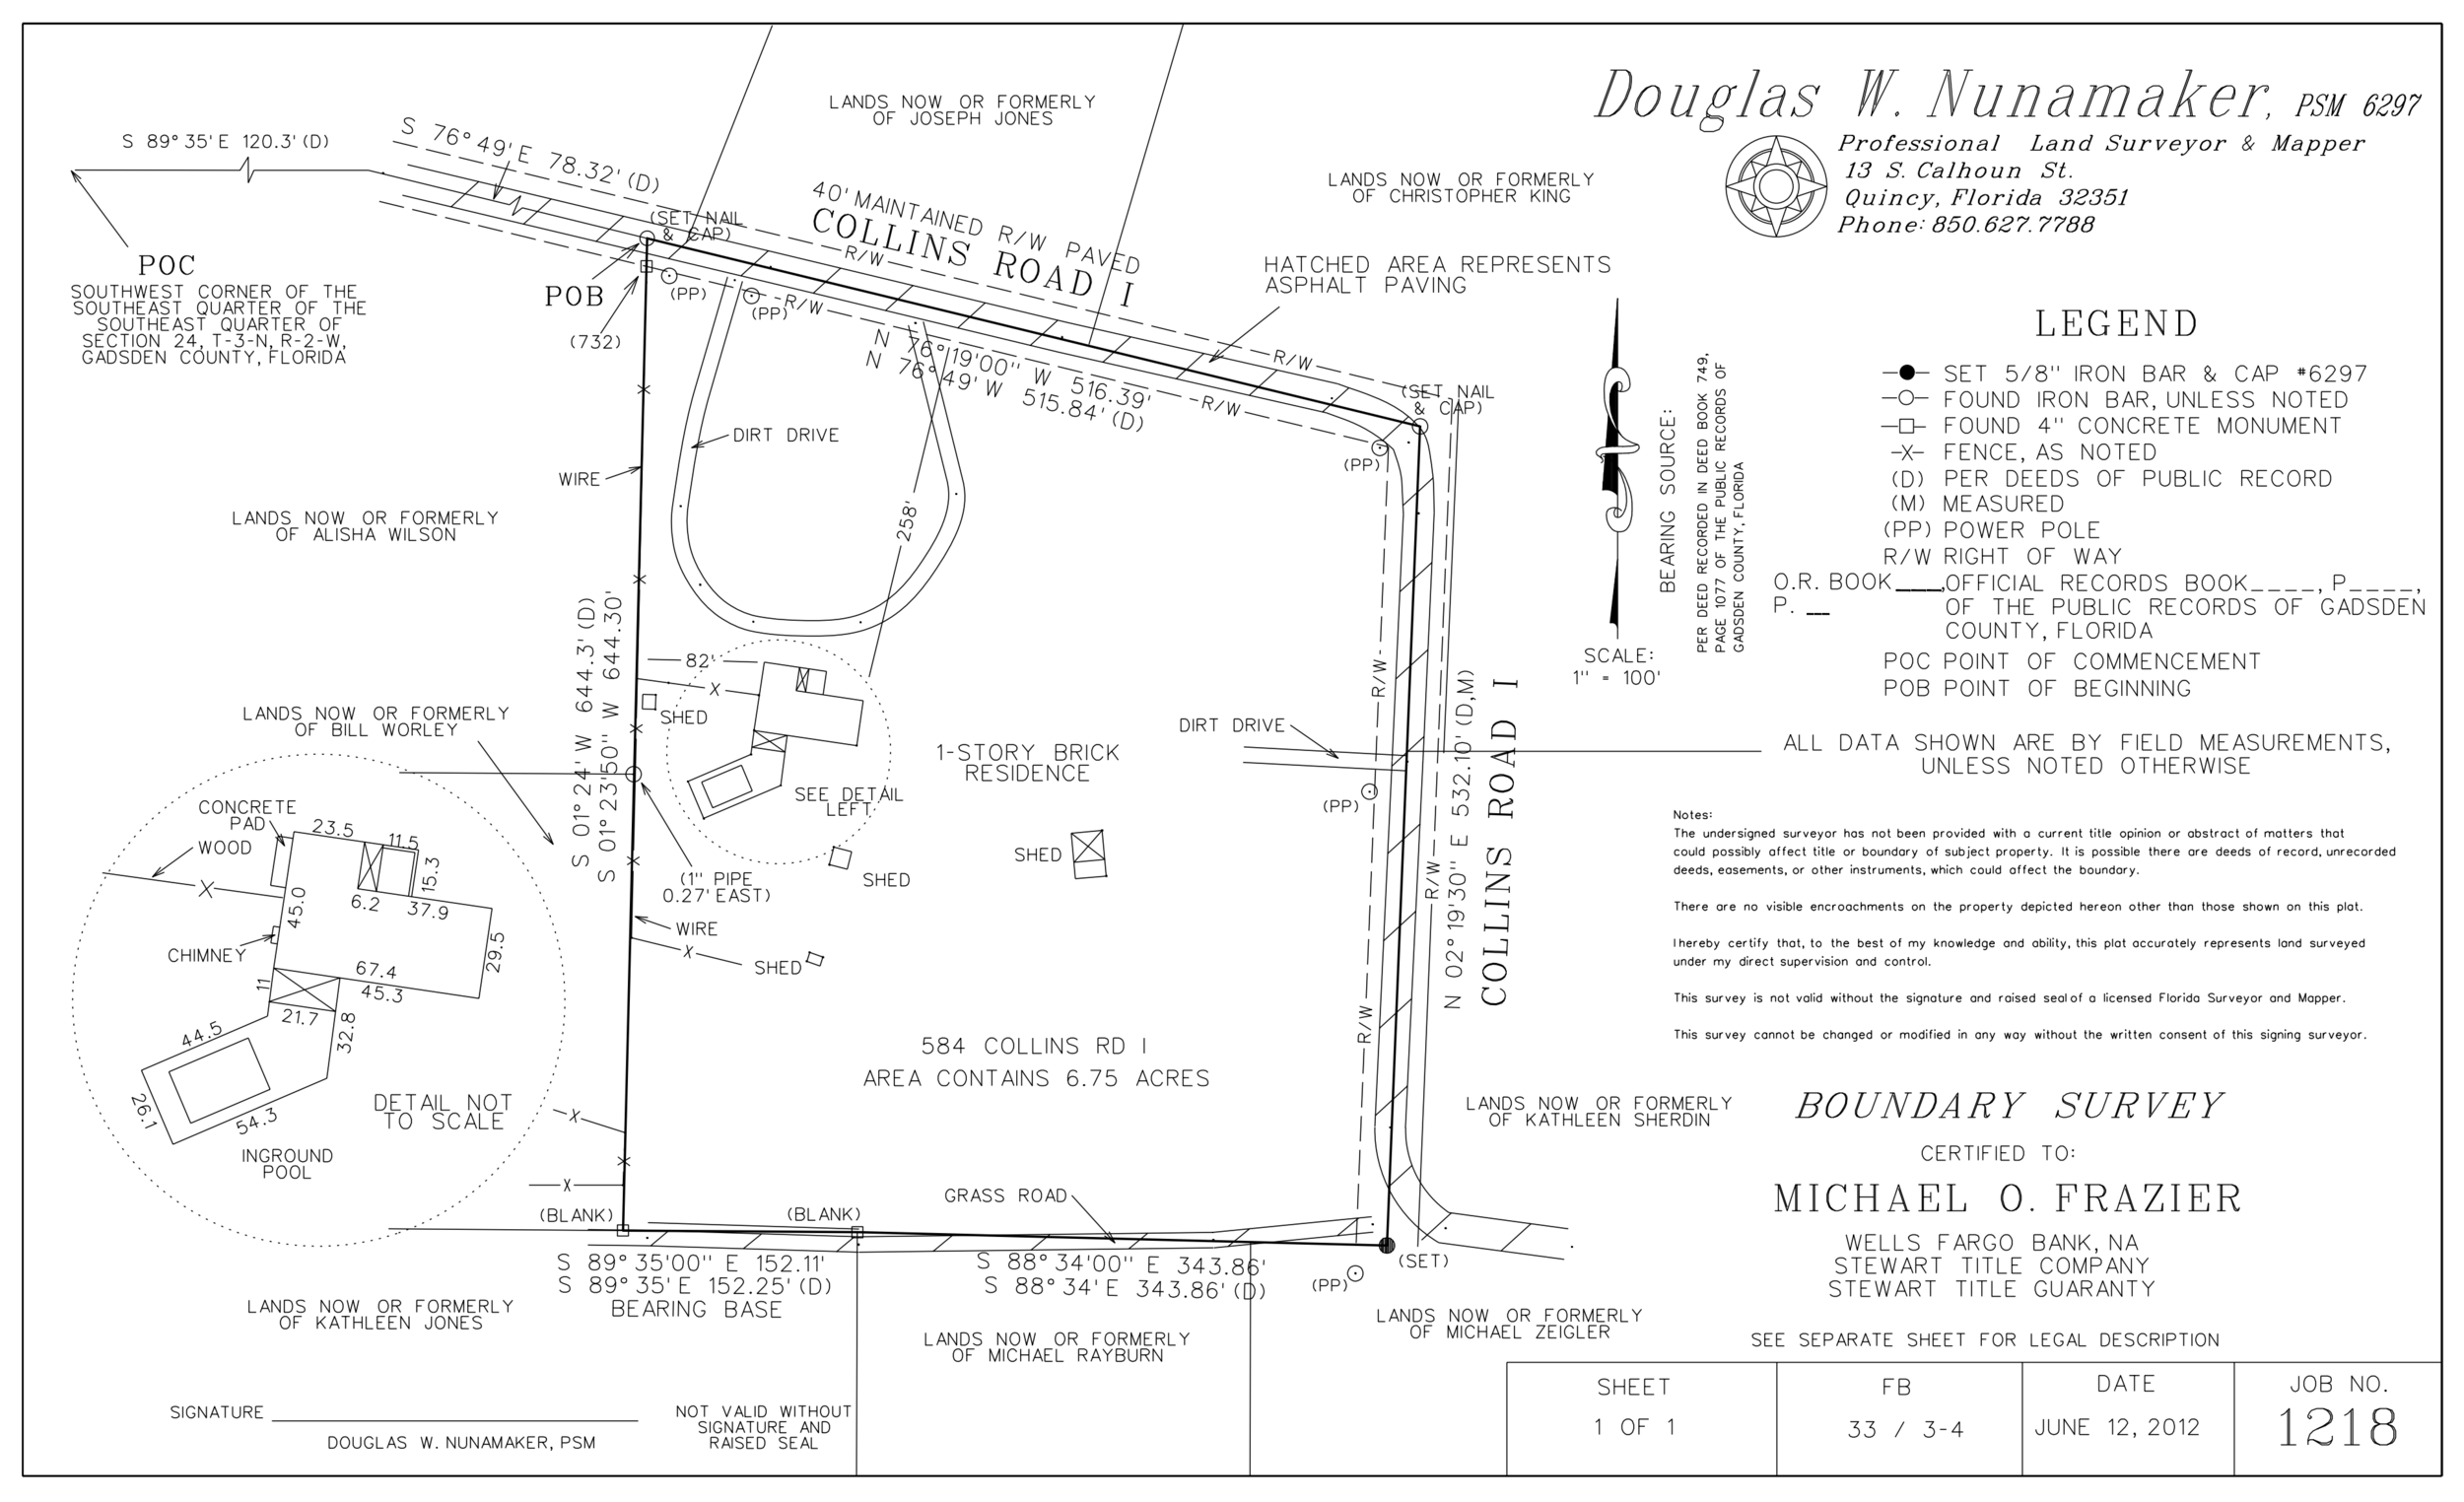 Boundary (Center Line of Road) Survey